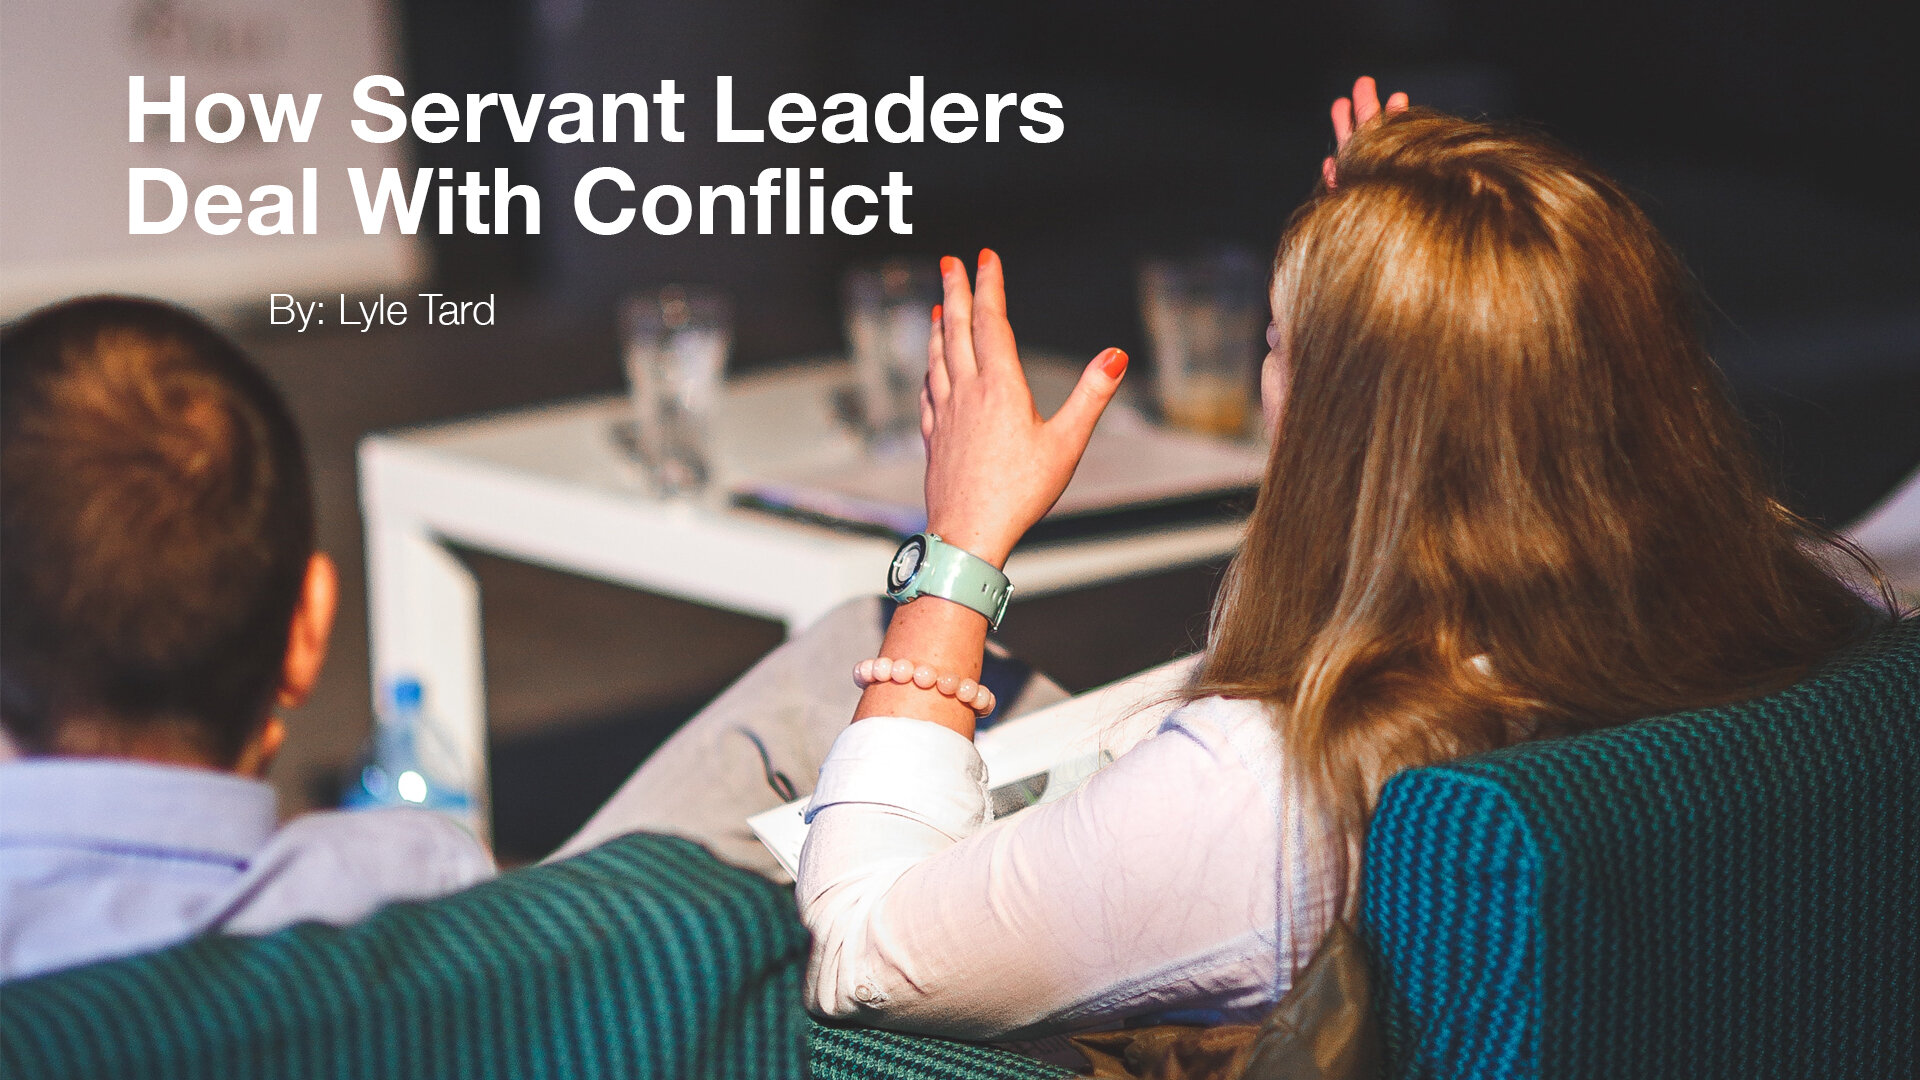 how servant leaders deal with conflict 1920x1080.jpg